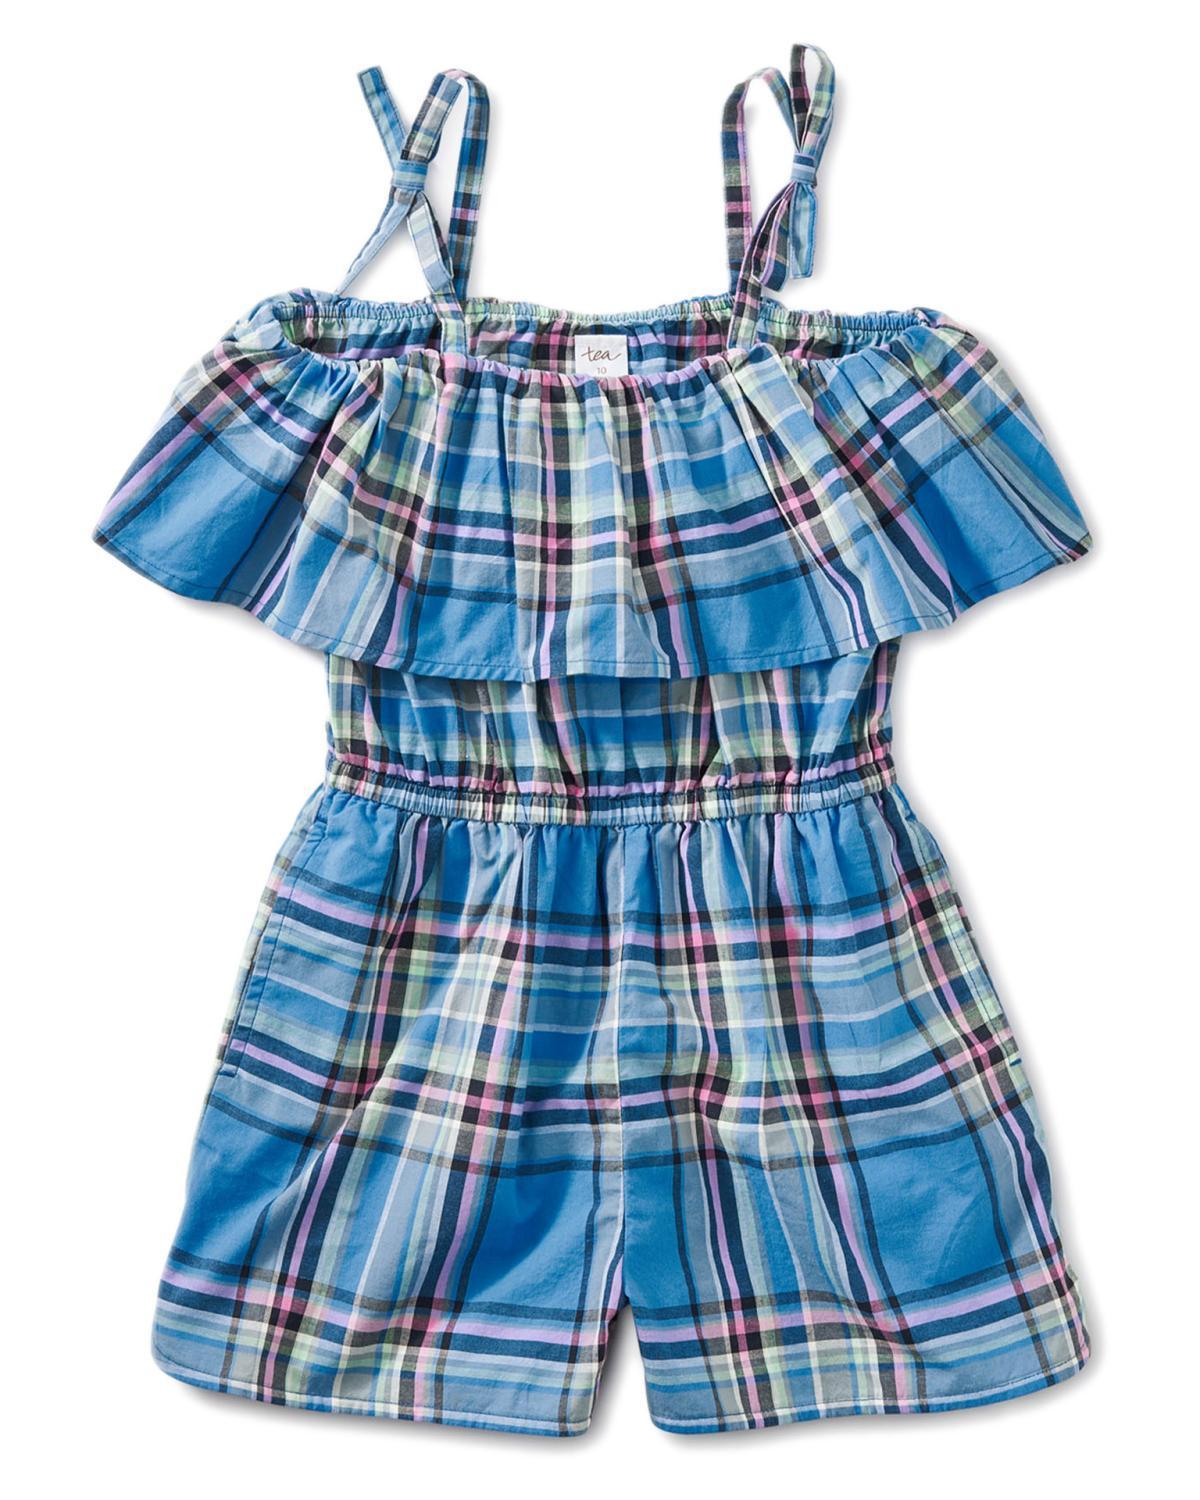 Little tea collection big girl 10 madras ruffle romper